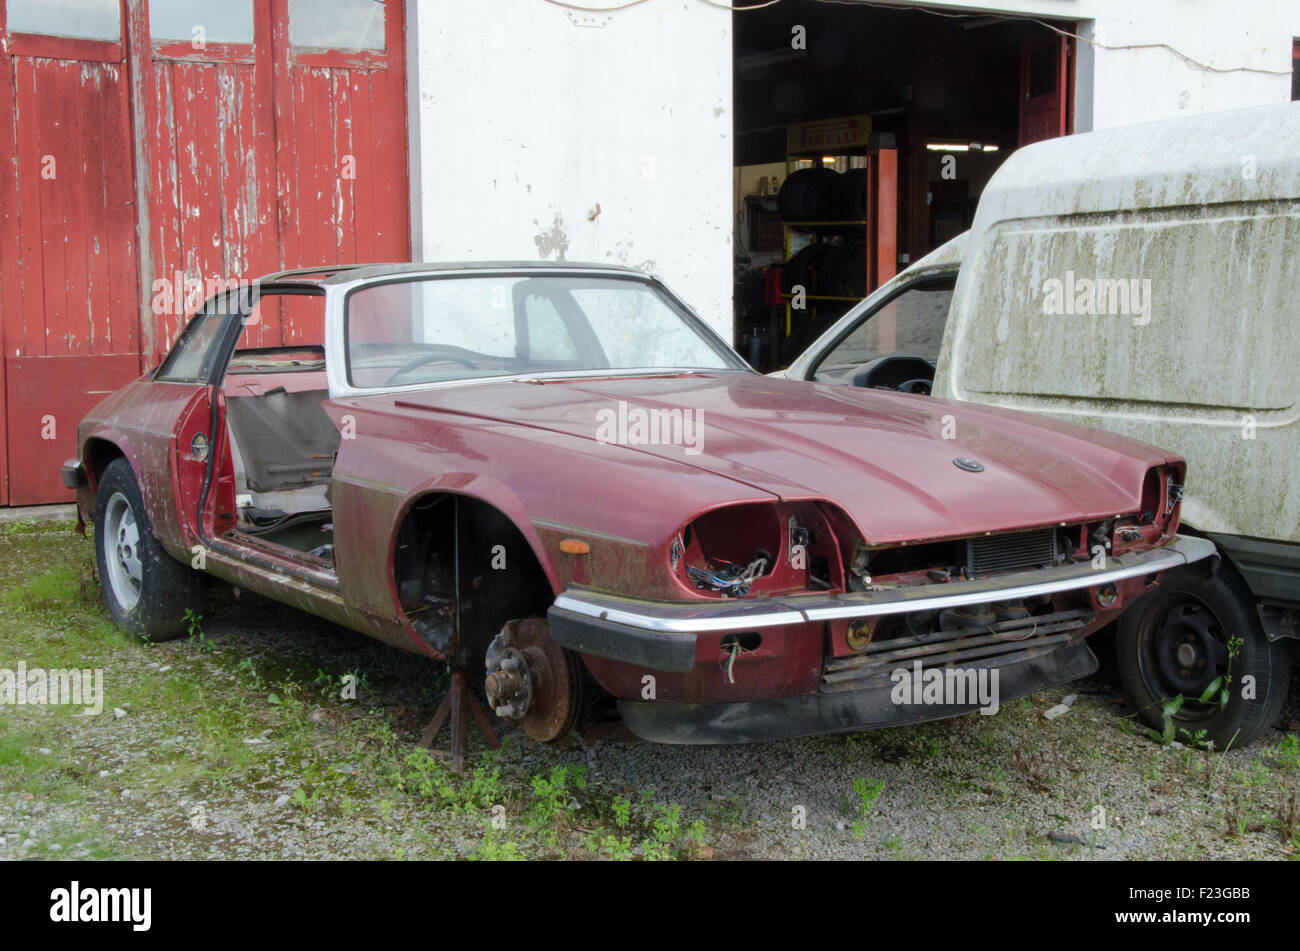 Attractive Old Car Bodies For Sale Pattern - Classic Cars Ideas ...